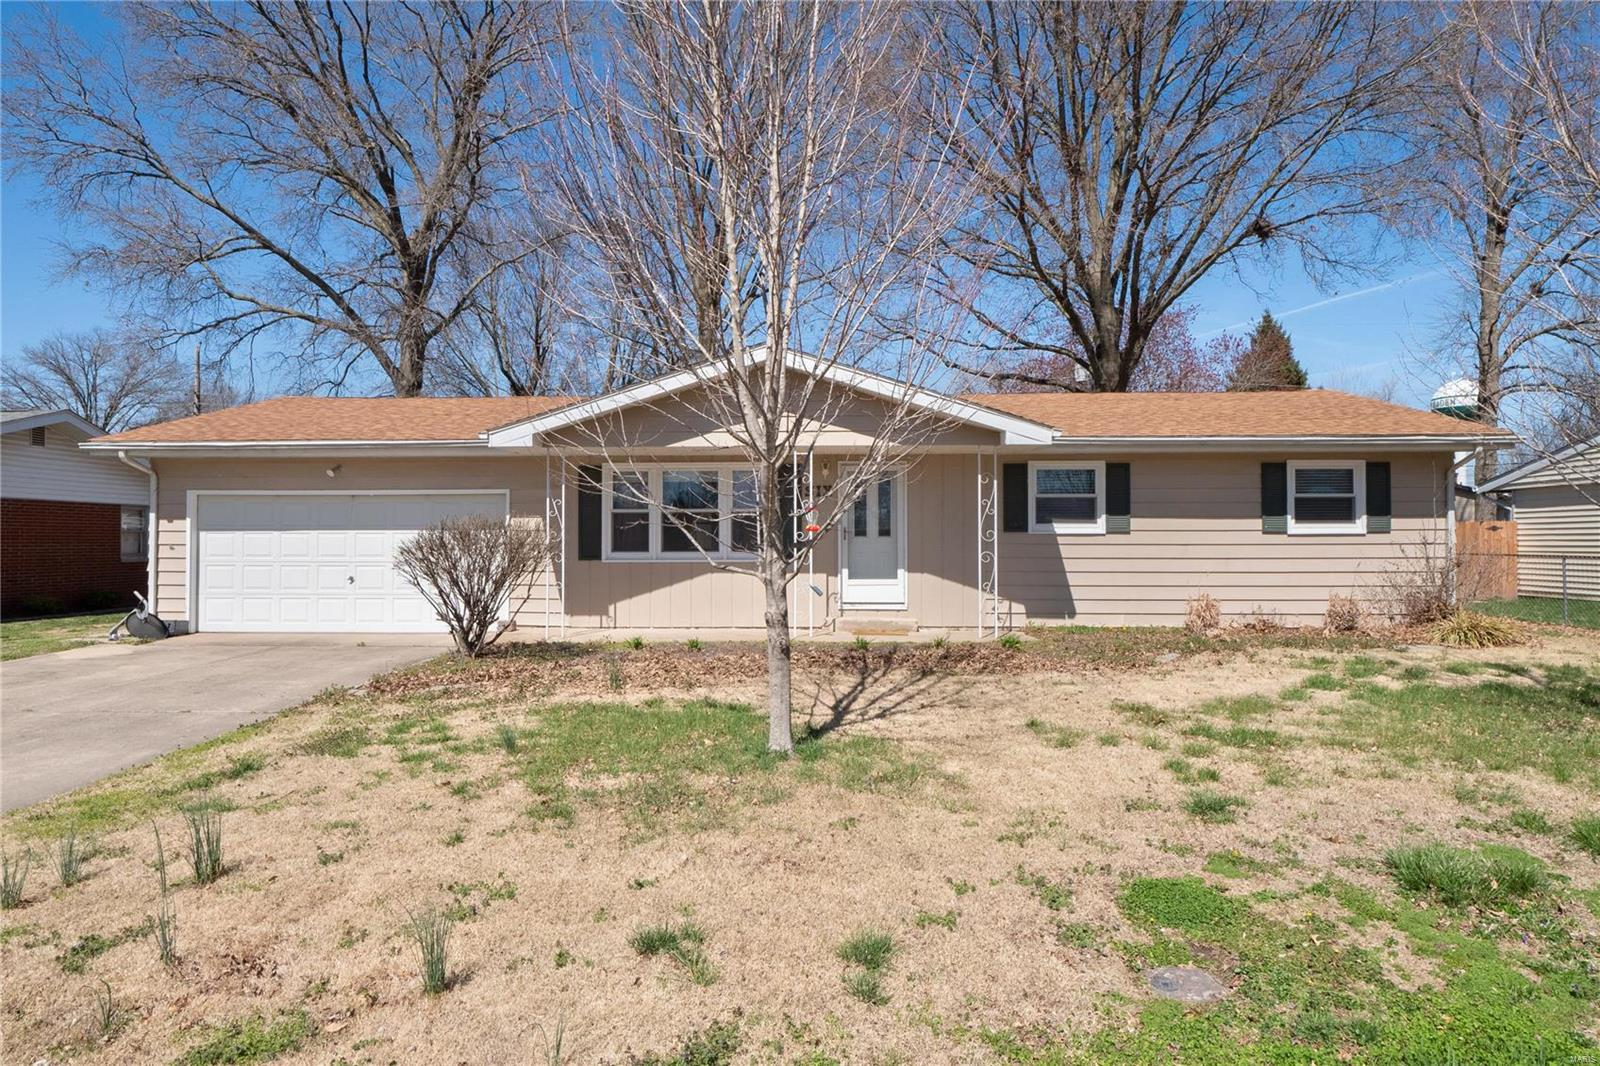 6 E Poos Drive Property Photo - New Baden, IL real estate listing